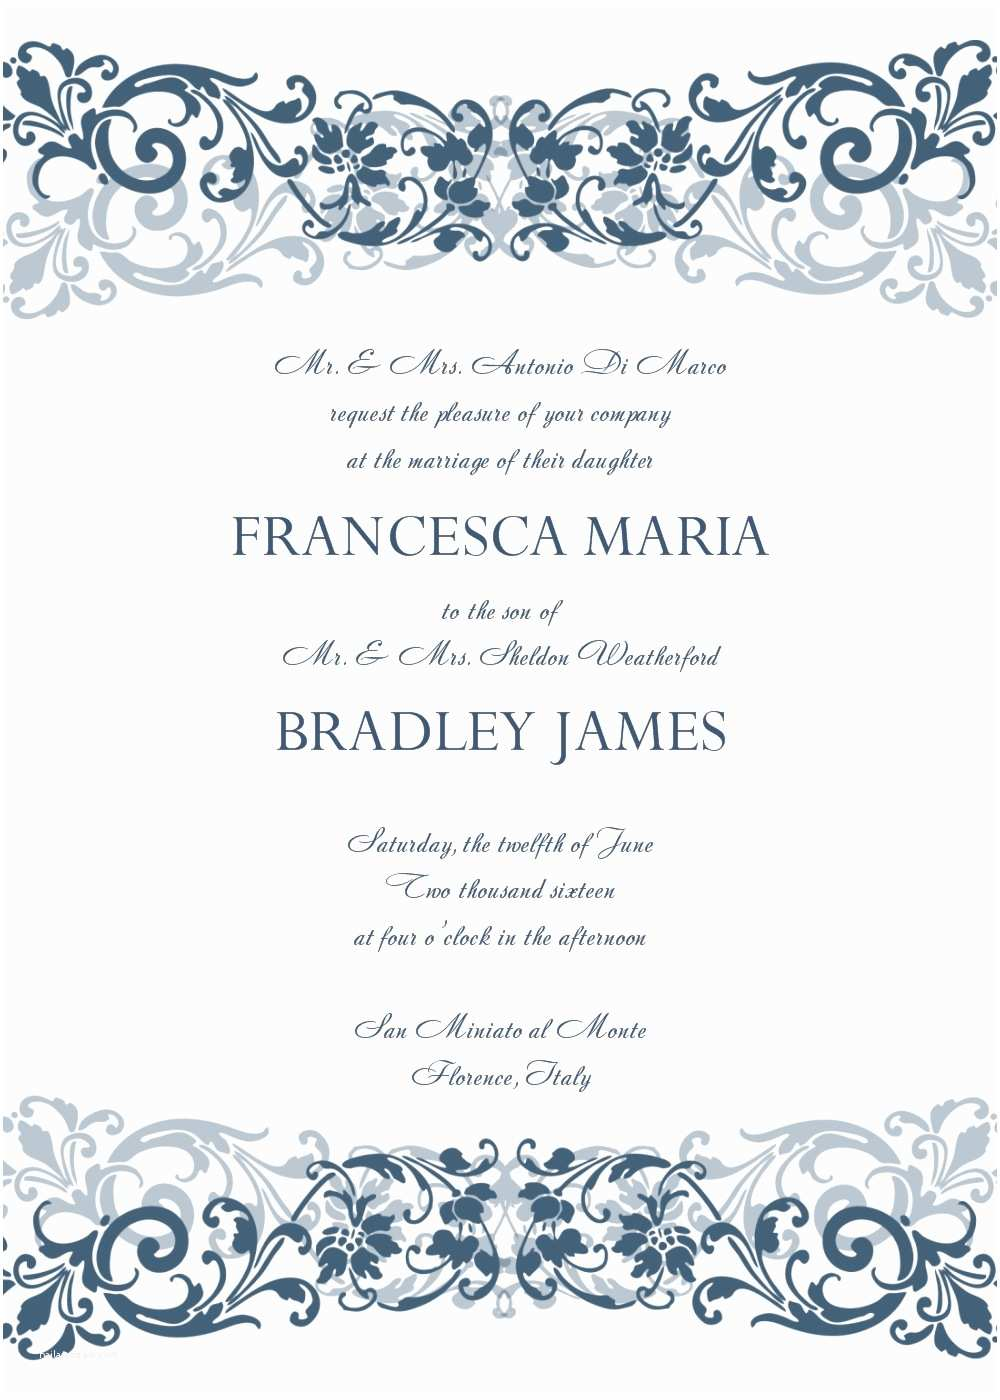 How to Make Own Wedding Invitations How to Make Your Own Wedding Invitations Template Resume